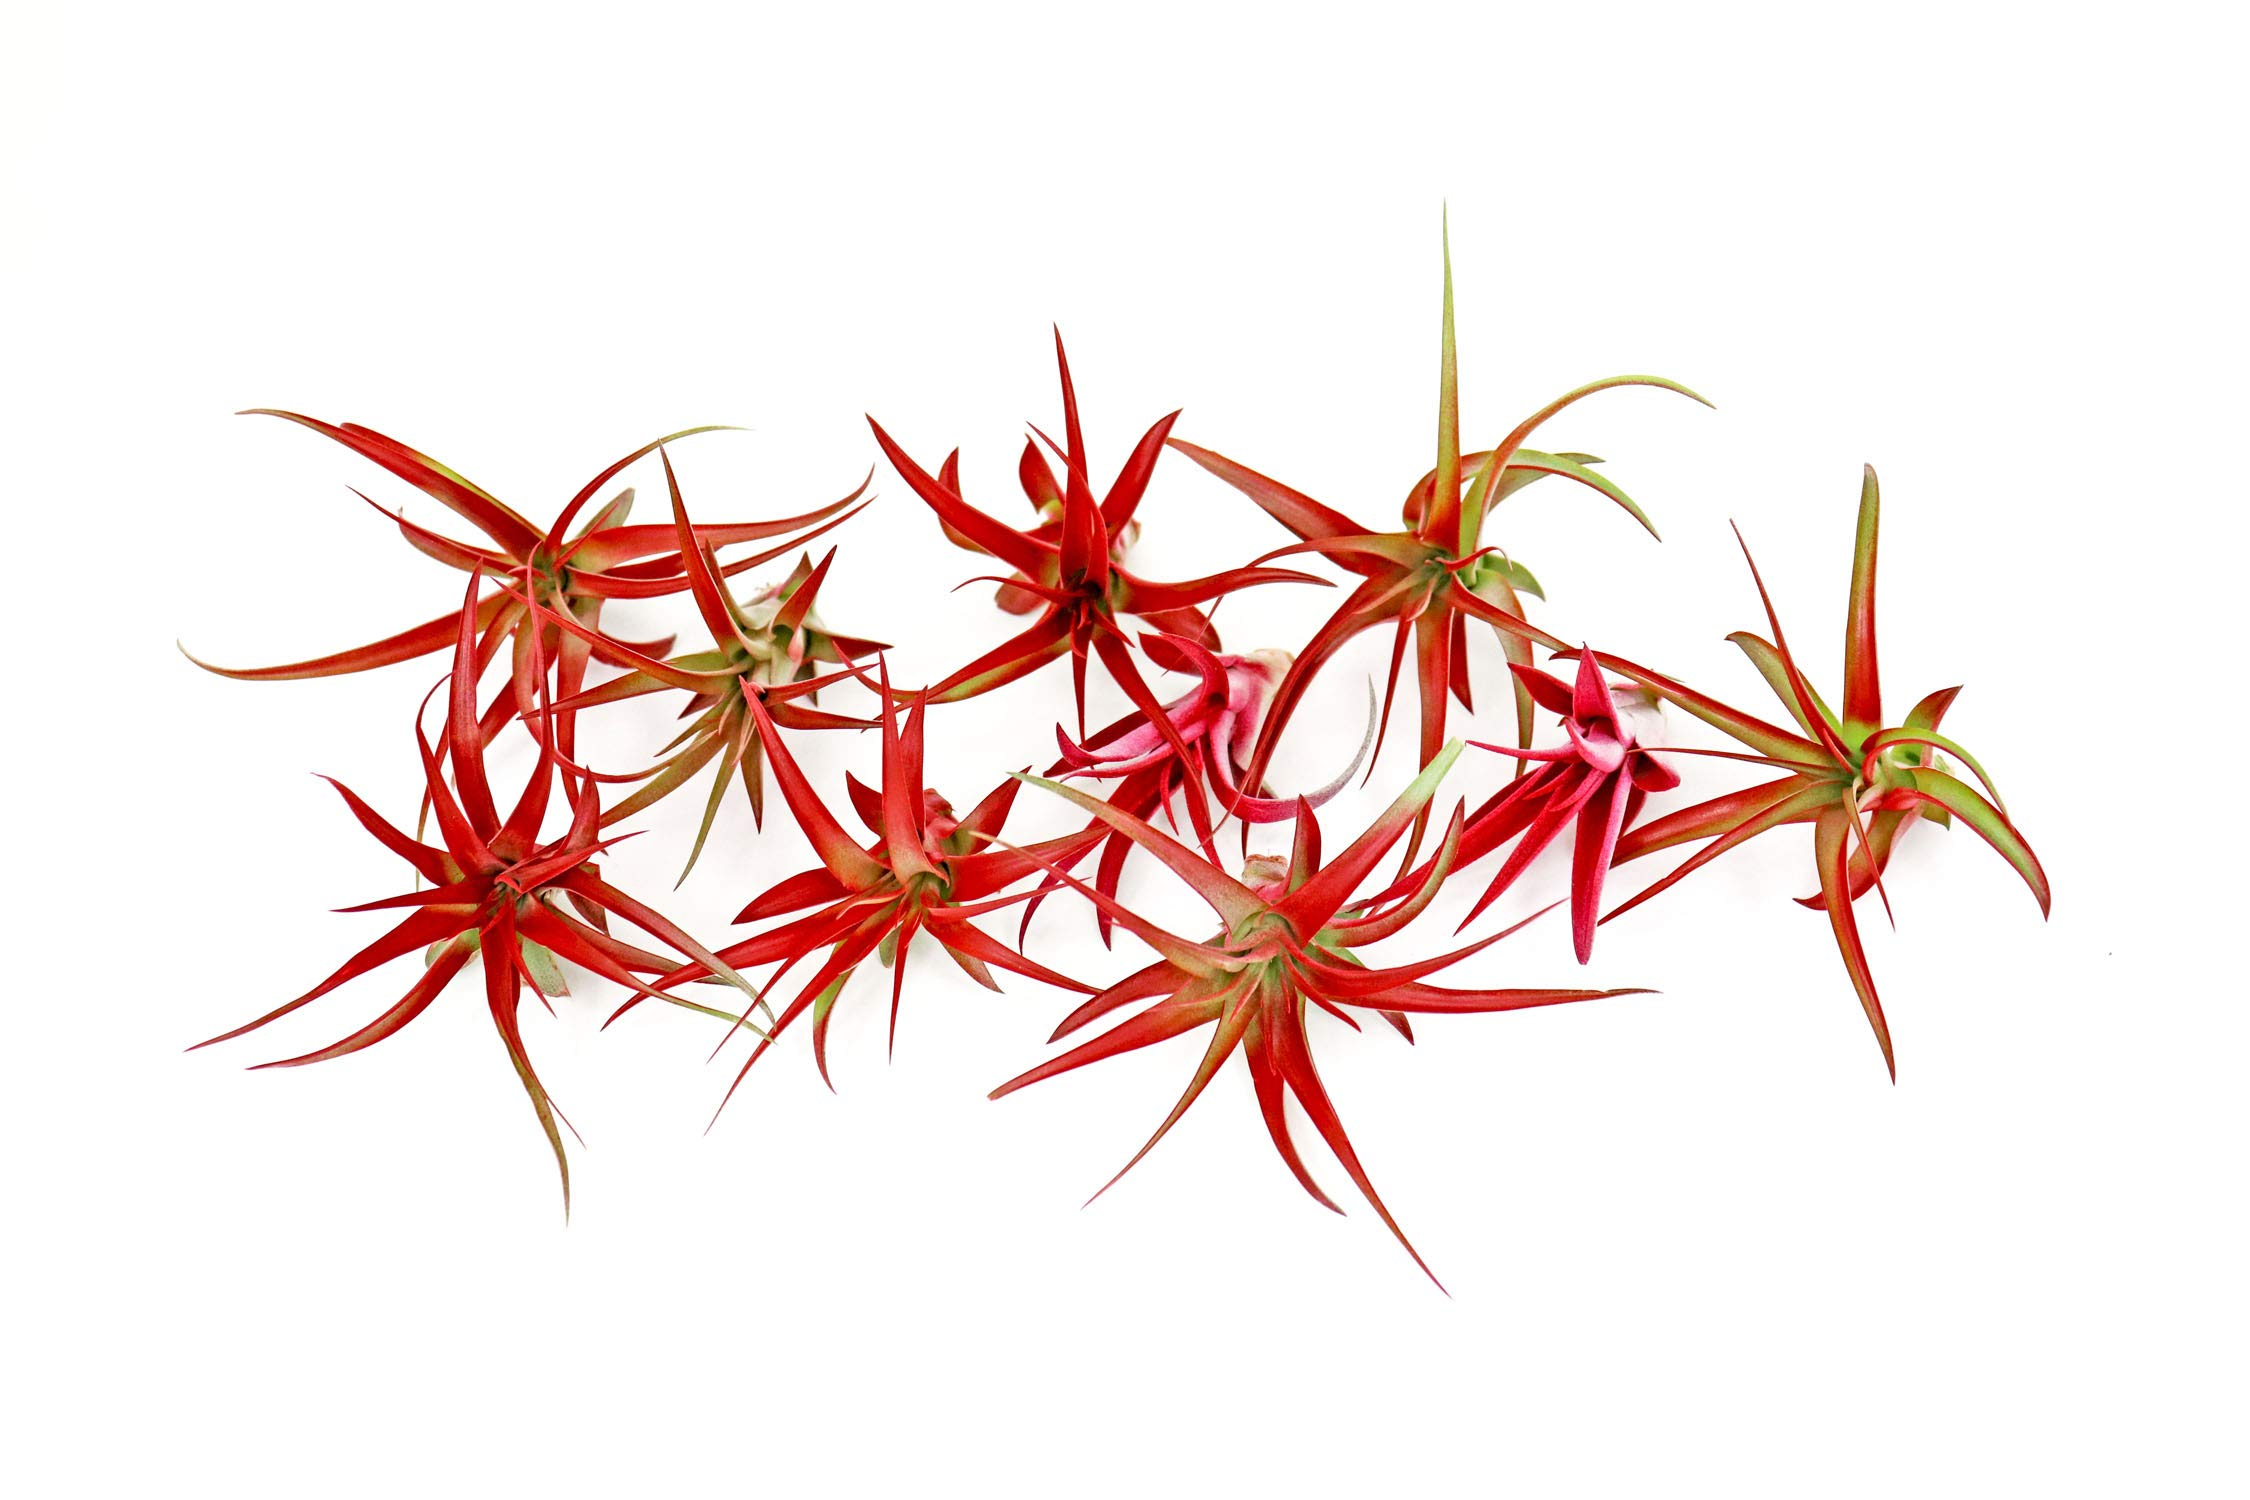 10 Live Air Plants | Bright Red Tillandsia Air Plant Pack | Colorful Indoor Plants | Real Houseplants | Easy Terrarium Decor Kit by Plants for Pets by Plants for Pets (Image #4)